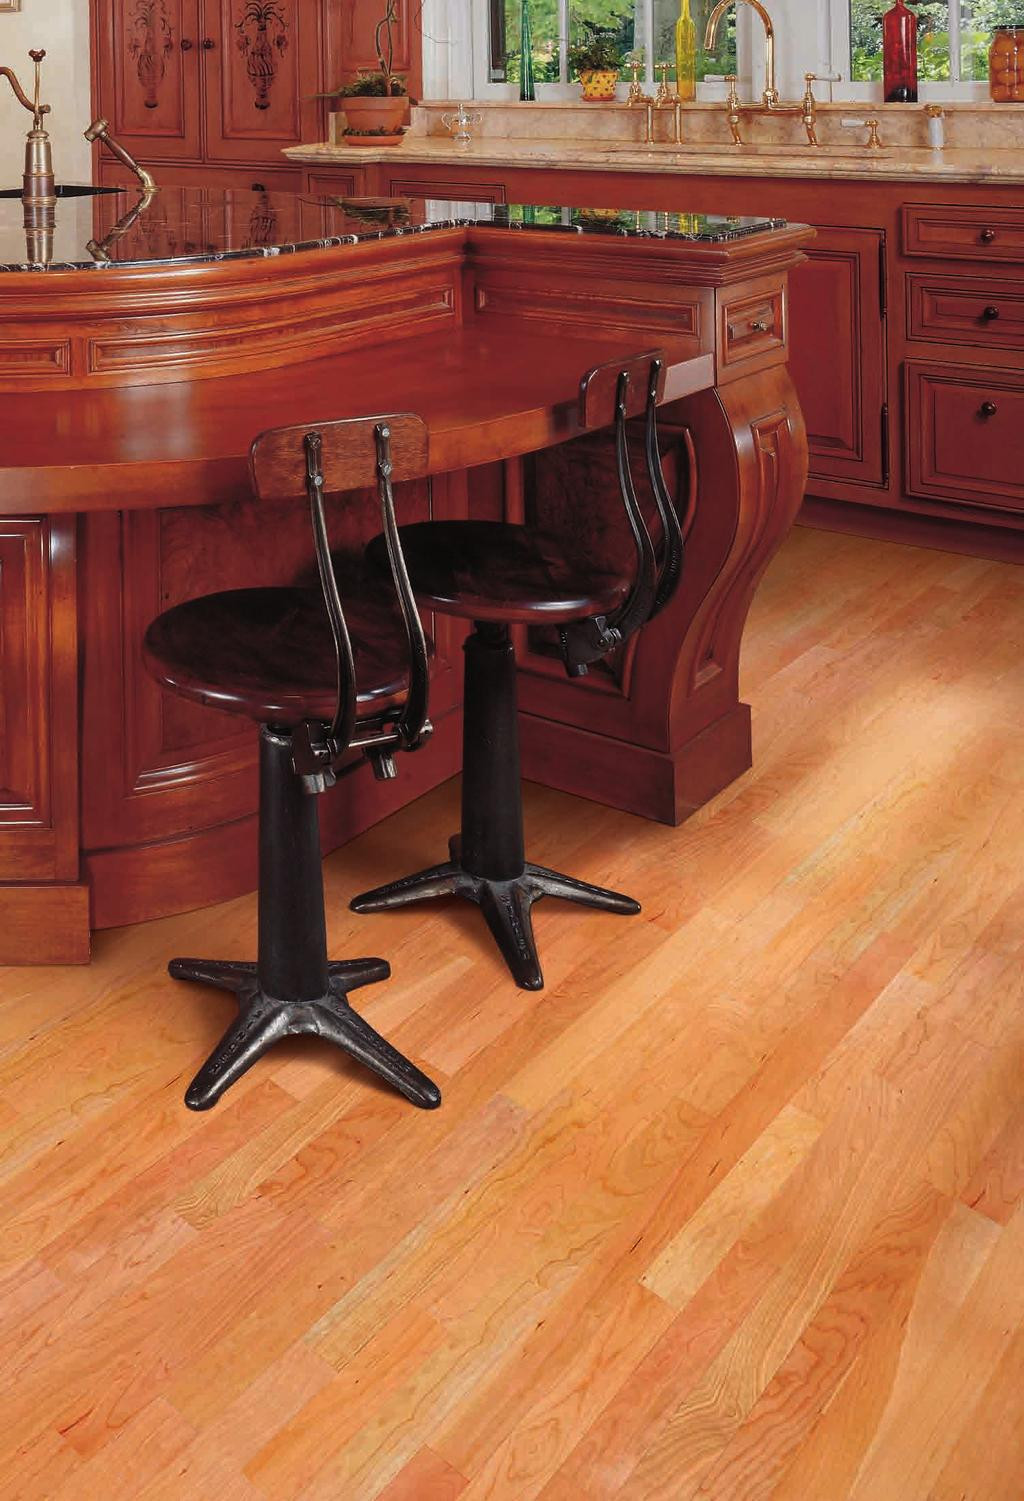 homerwood hardwood flooring prices of mullican mullican e n g i n e e r e d h a r d w o o d f l o o r with regard to presenting a unique collection of engineered hardwood flooring that will take your home to new levels